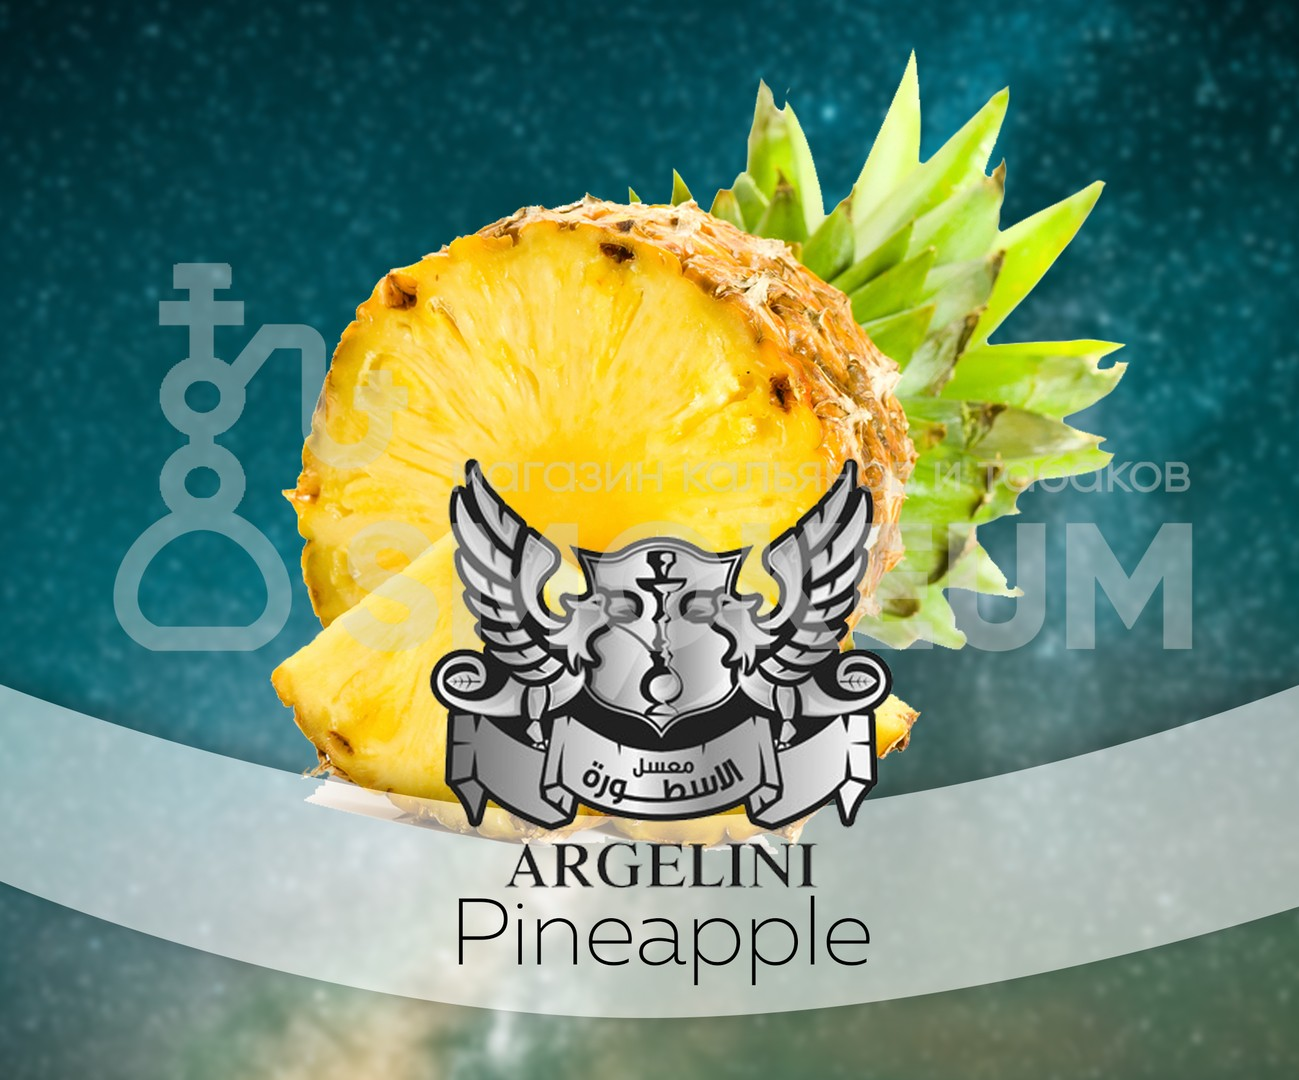 Табак Argelini - Pineapple (Ананас) 50гр